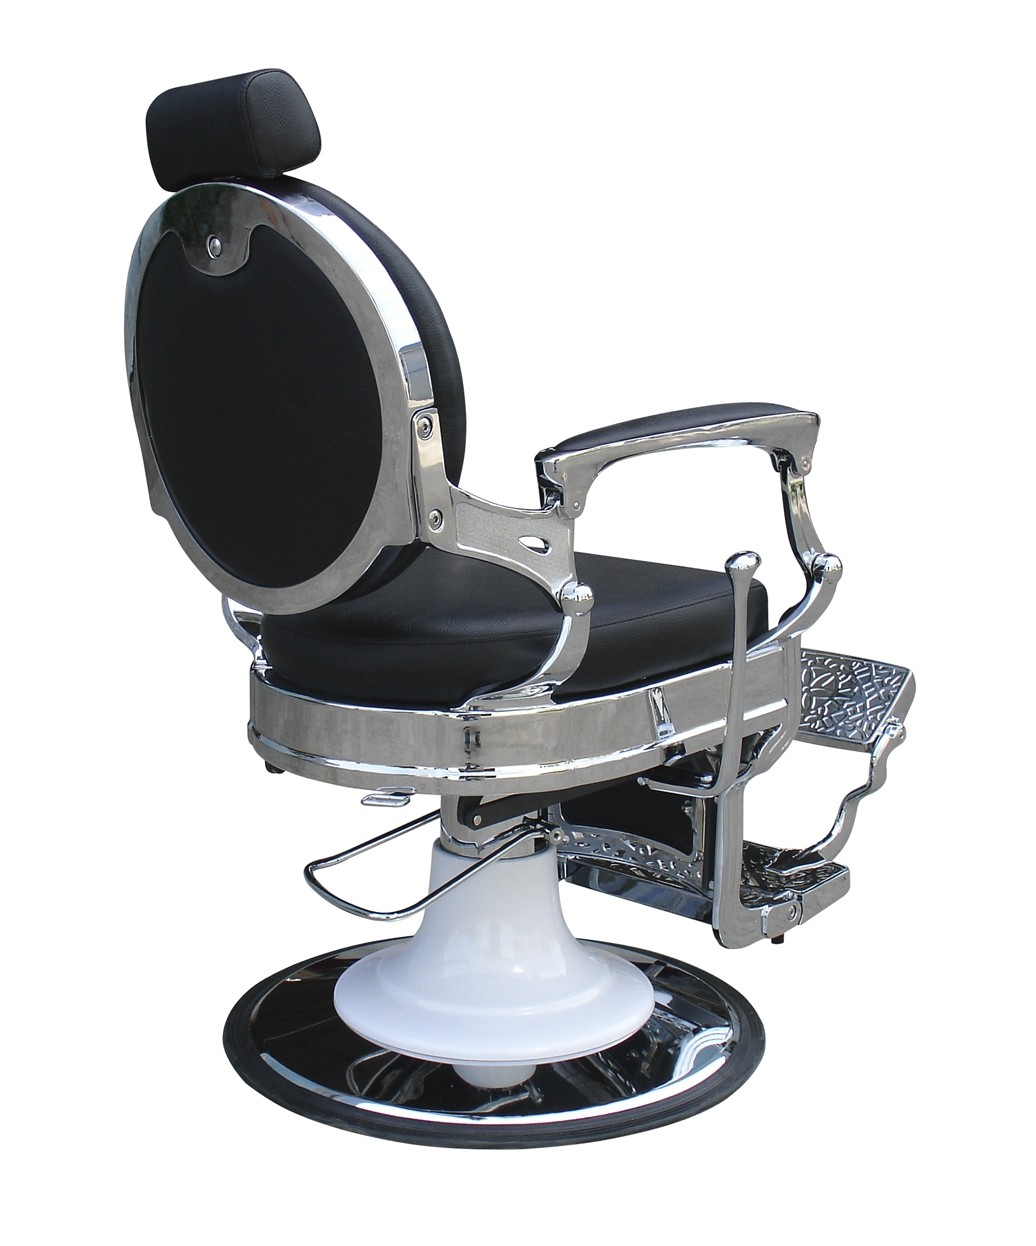 Capone Professional Barber Chair